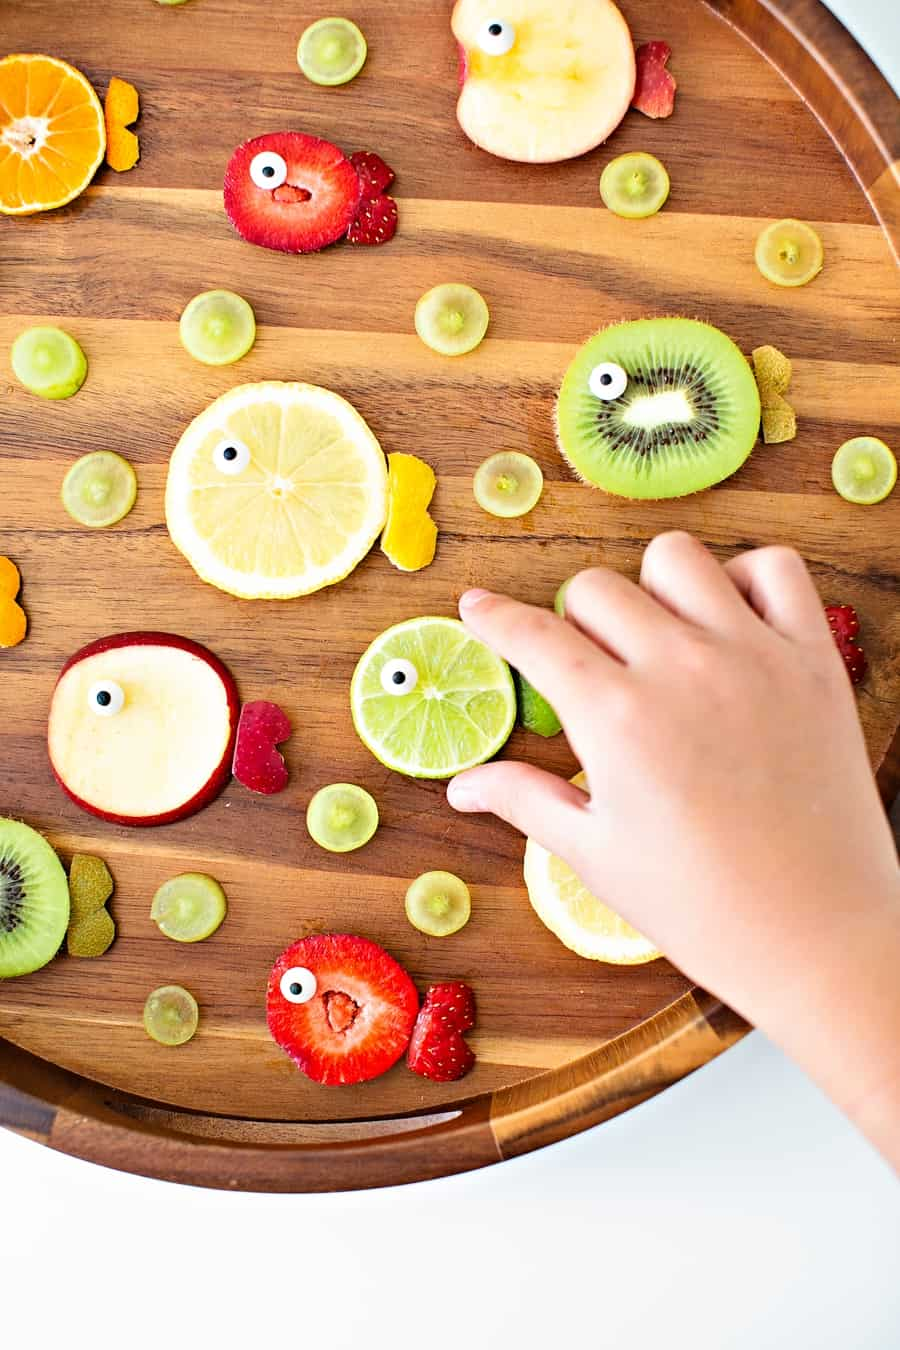 strawberries, oranges, limes, kiwi and apples cut to resemble fish fruit for a kid snack